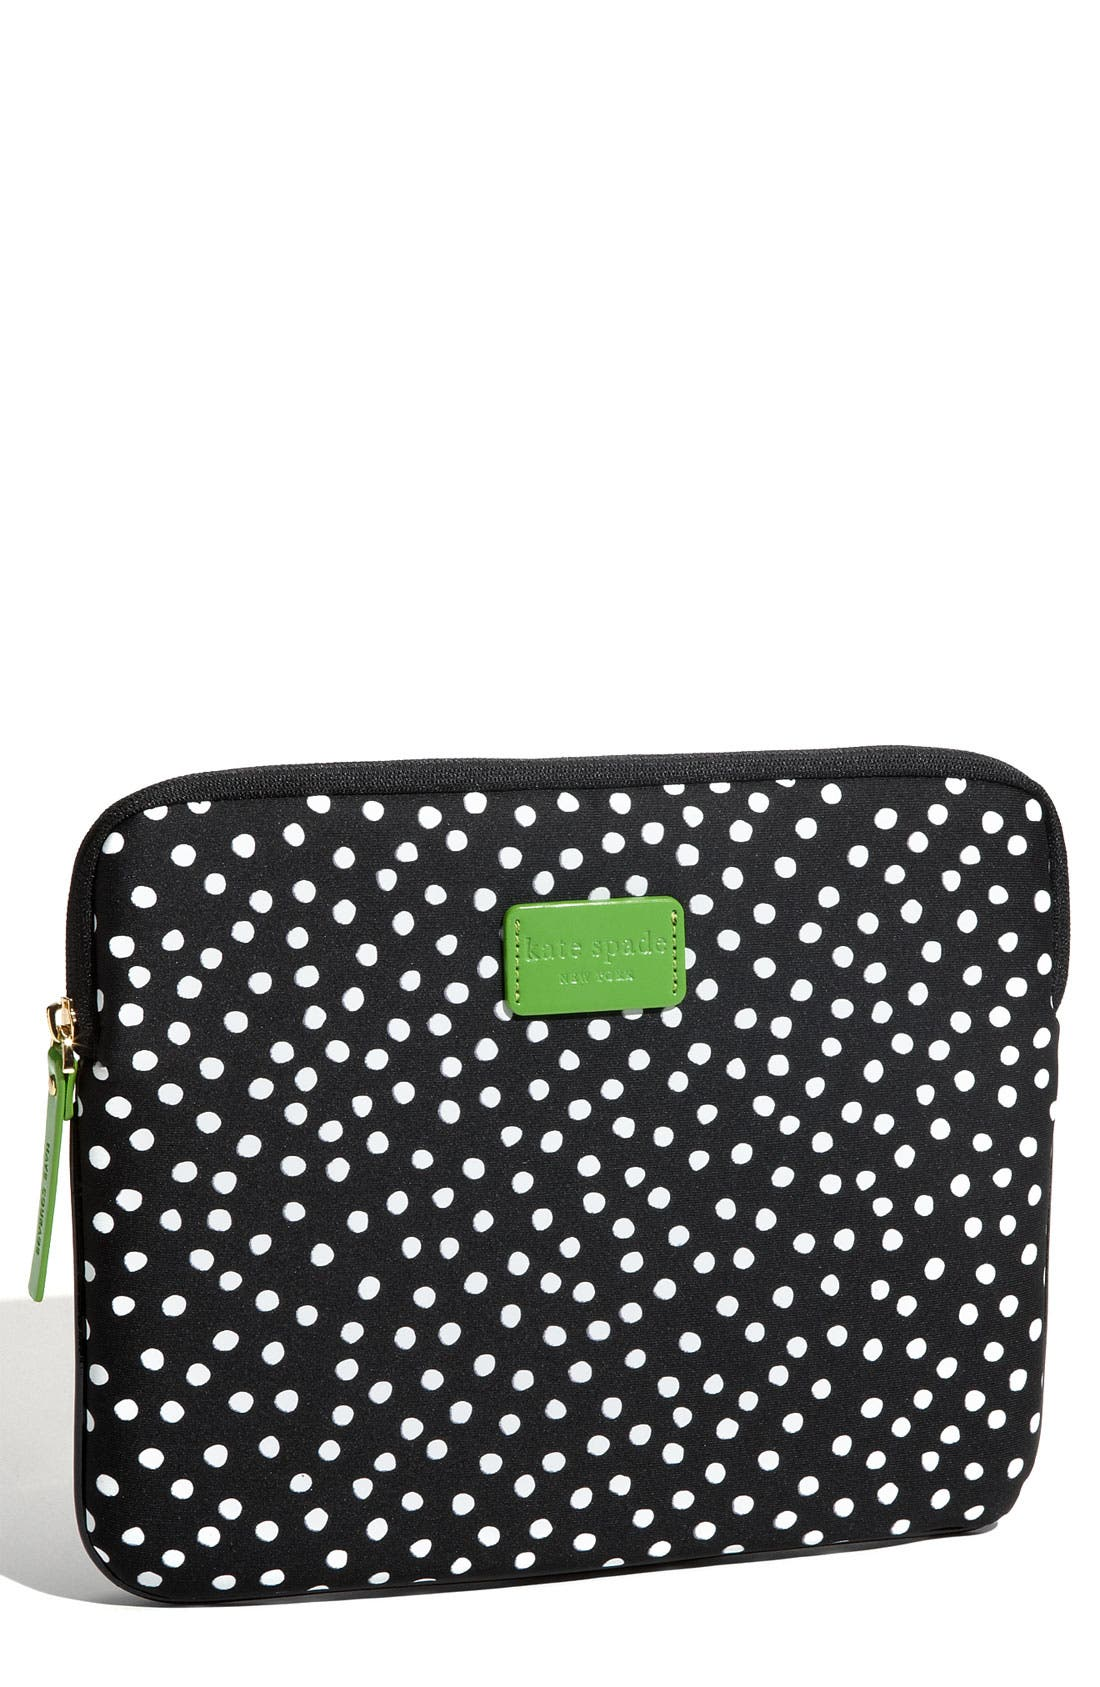 Main Image - kate spade new york neoprene iPad sleeve